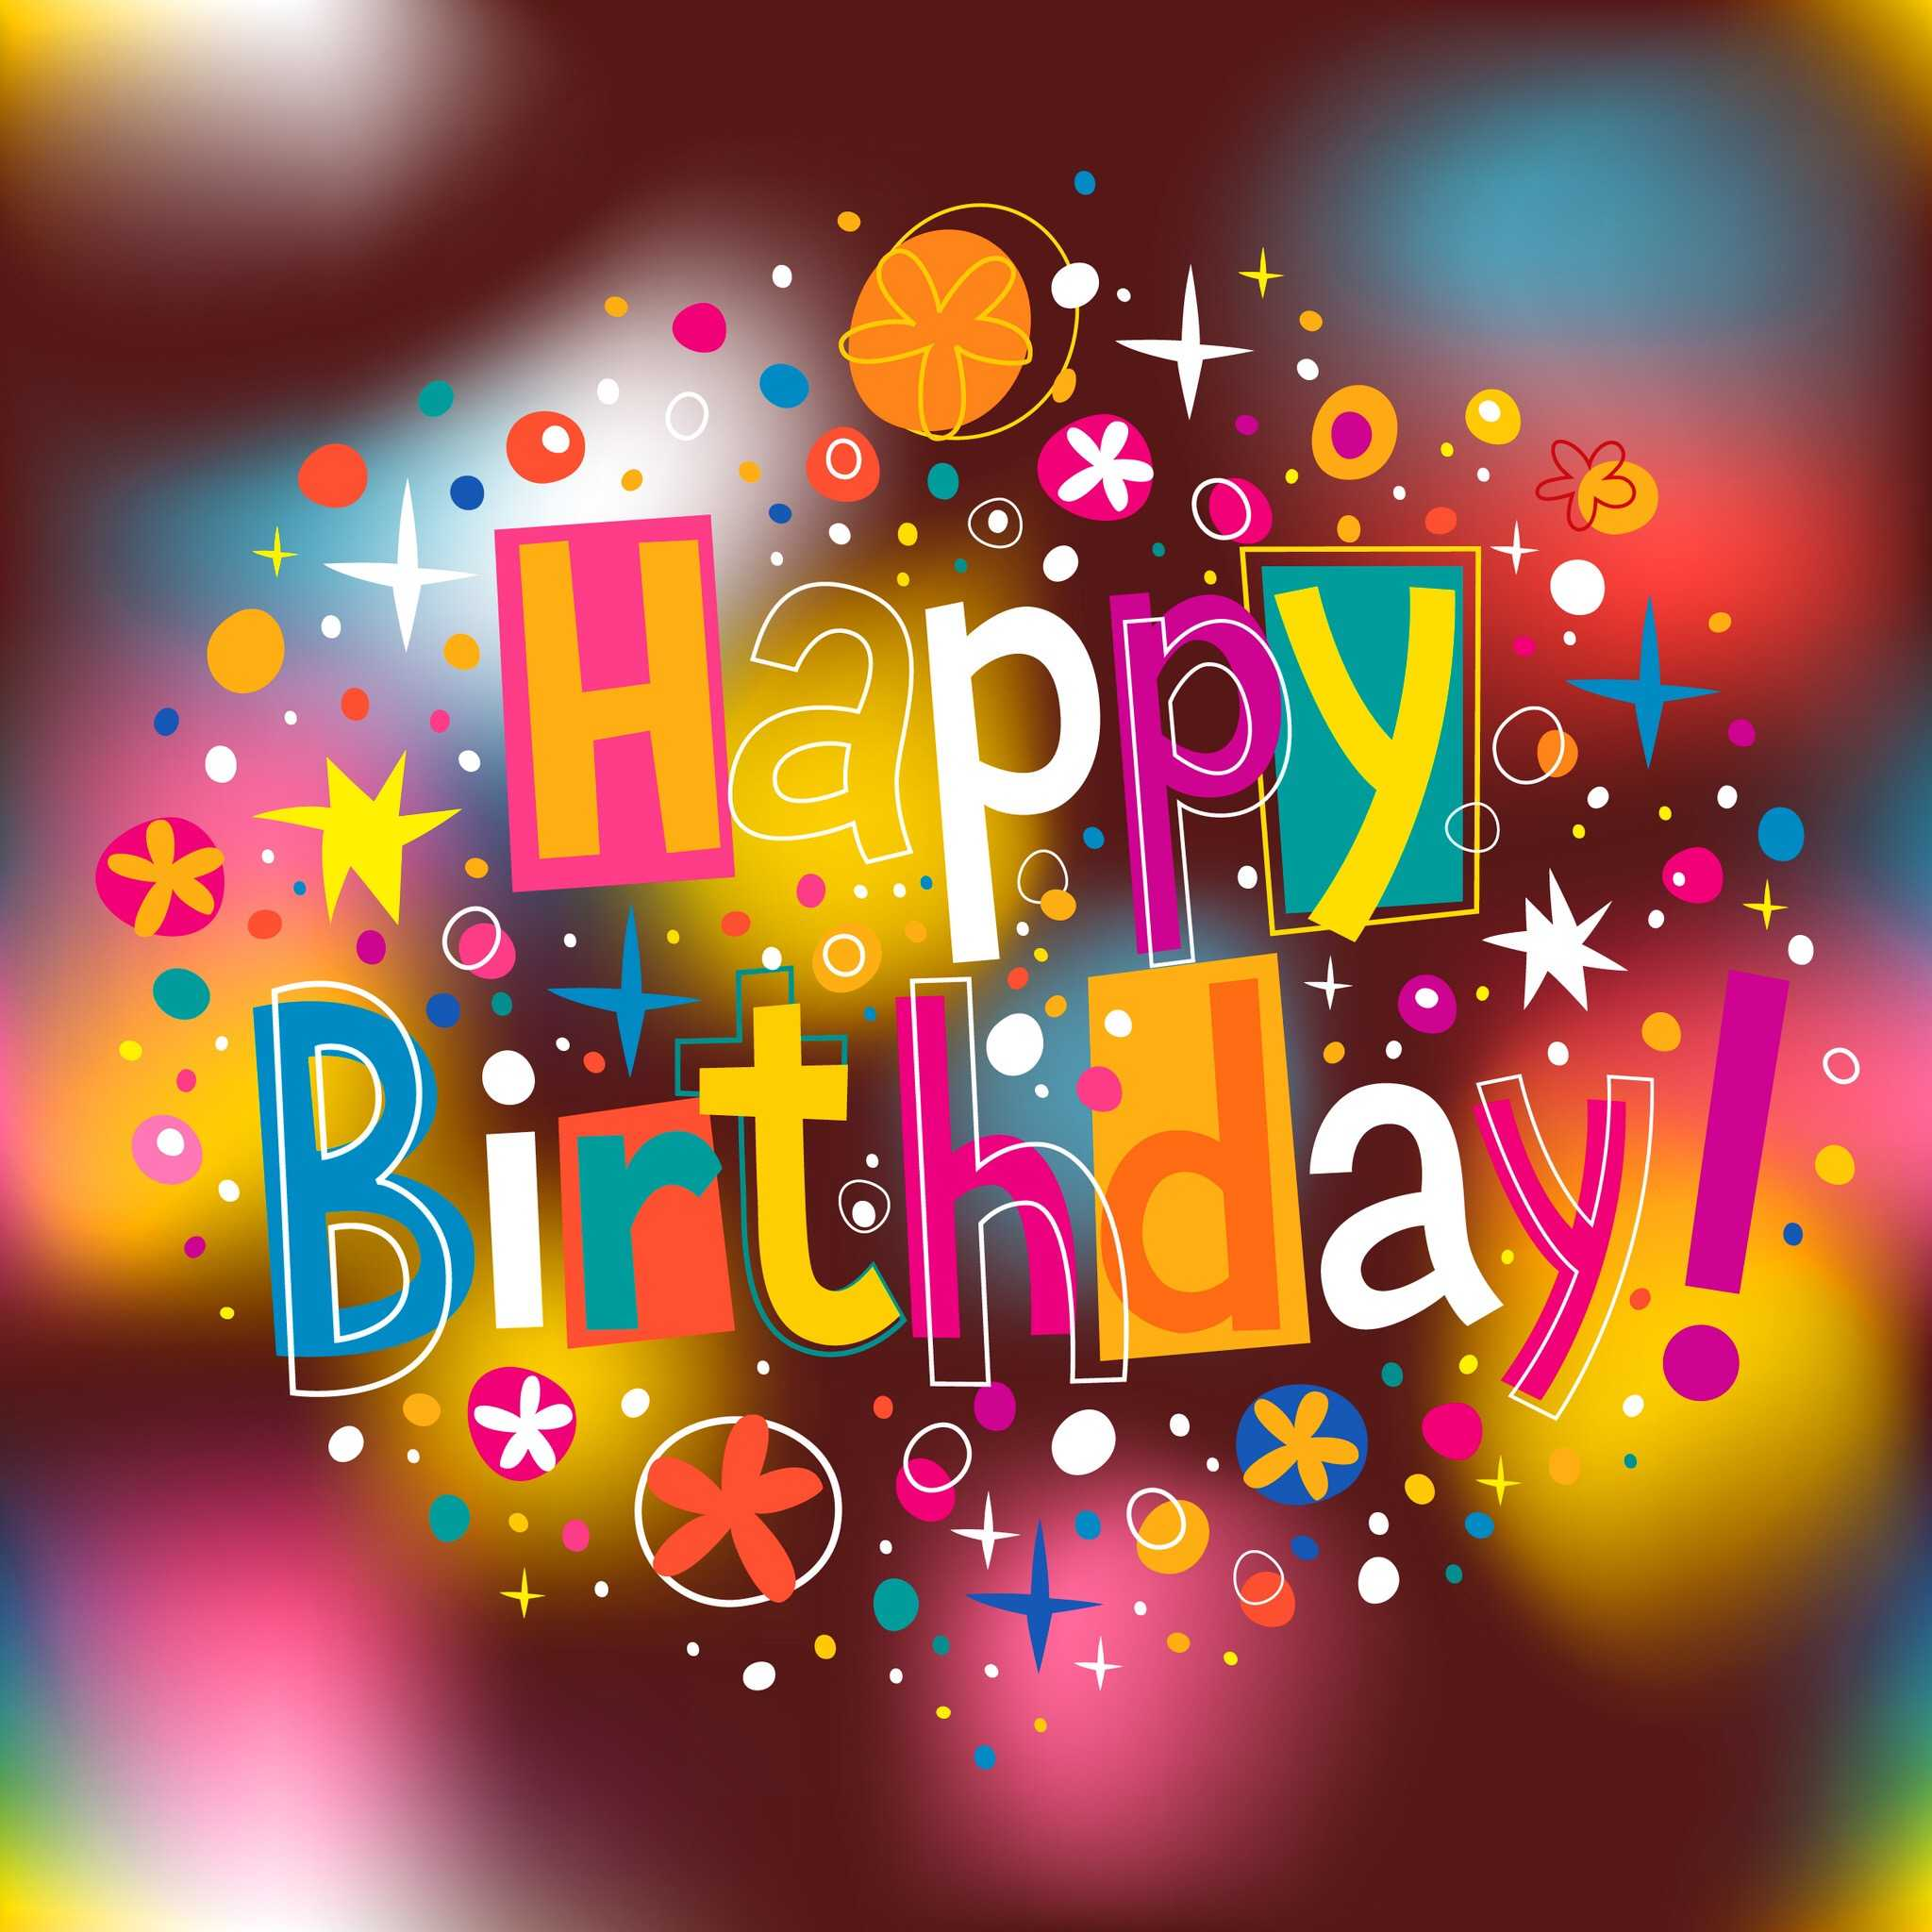 happy birthday images hd with quotes ; Best-Birthday-Quotes-Happy-Birthdays-And-Widescreen-Pictures-Of-Pc-Full-Hd-Pics